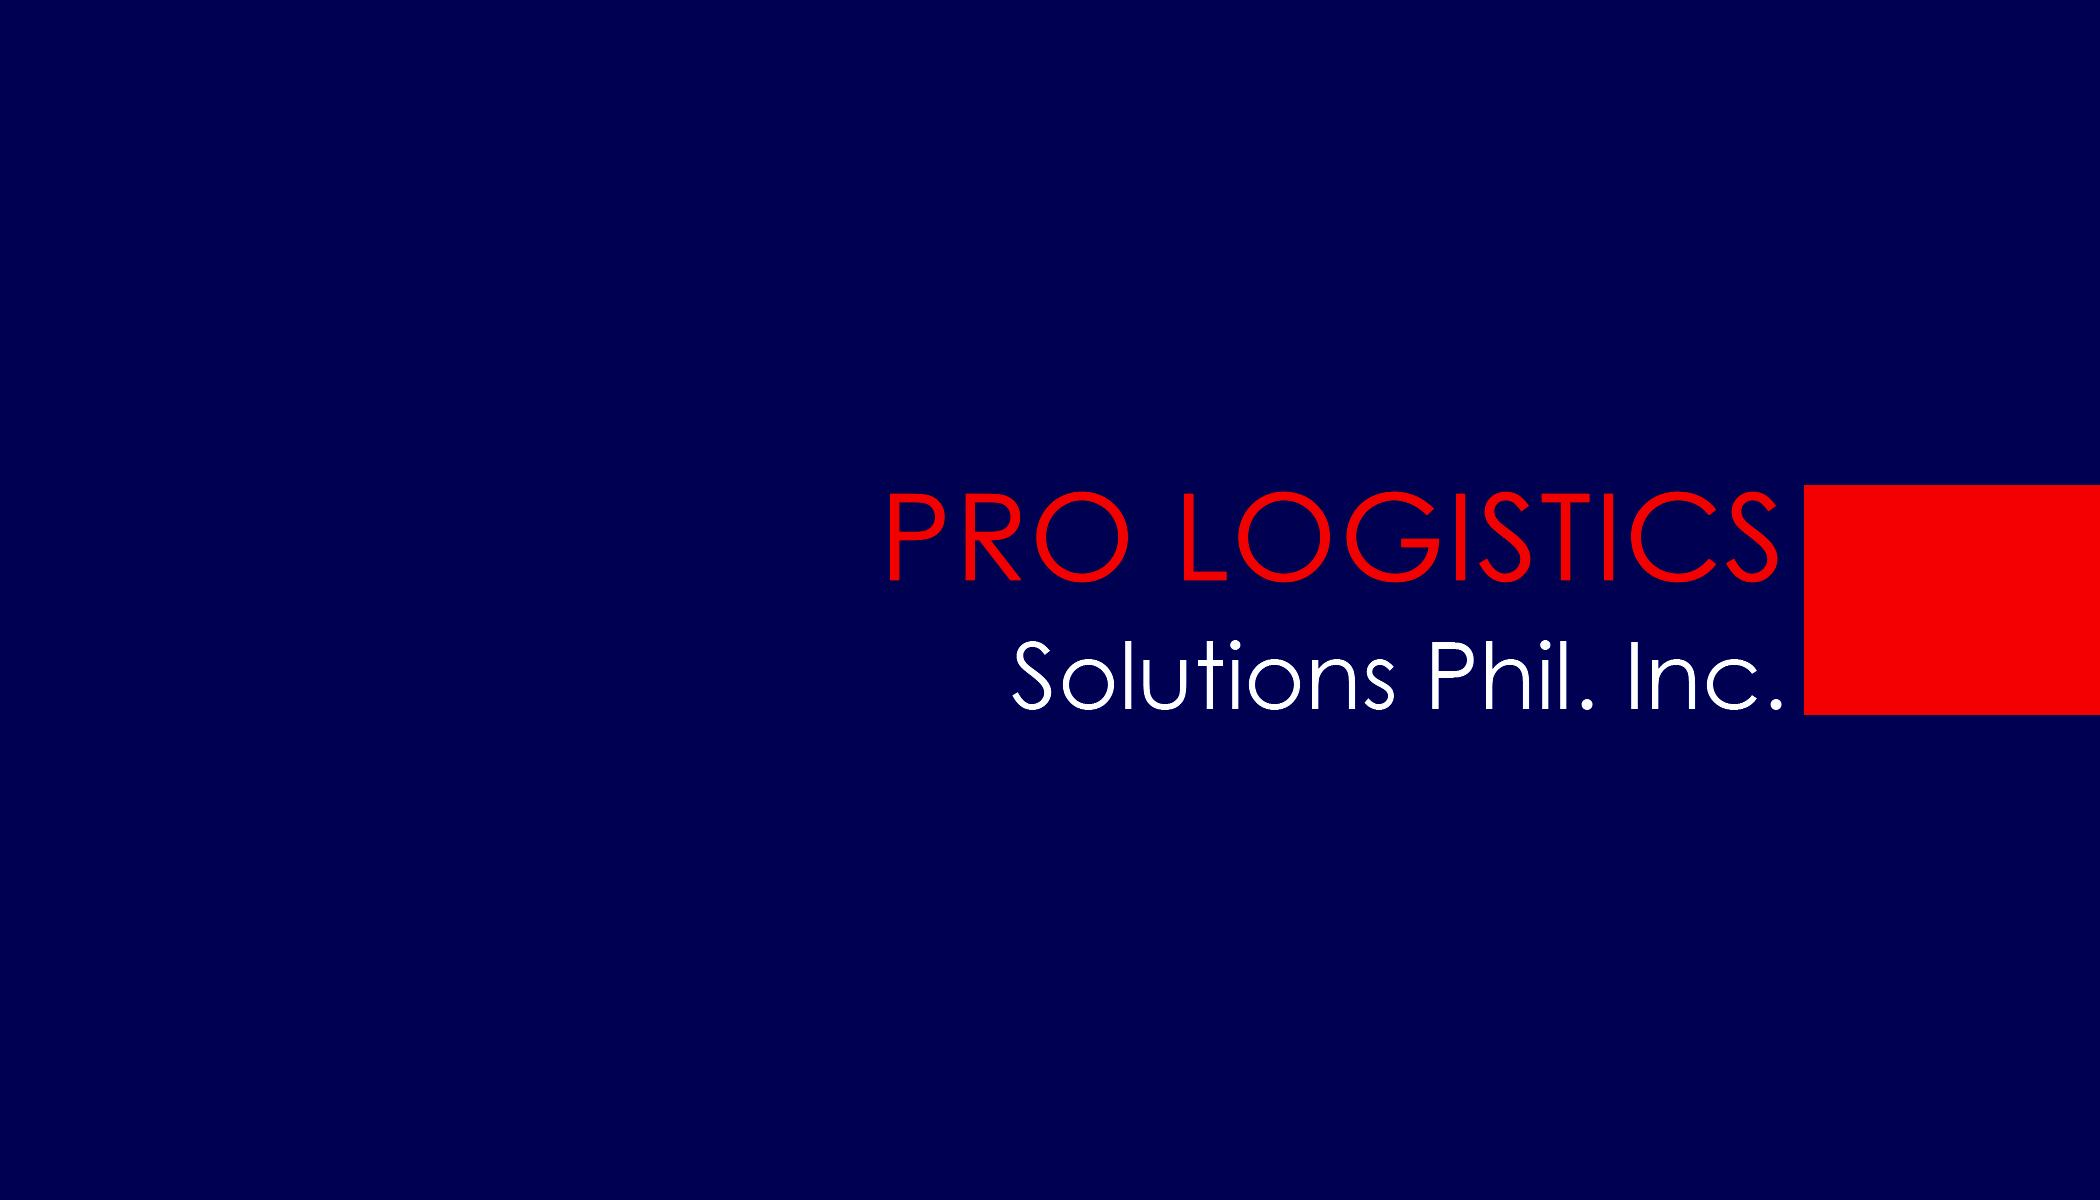 Pro Logistics Solutions Phil Inc.